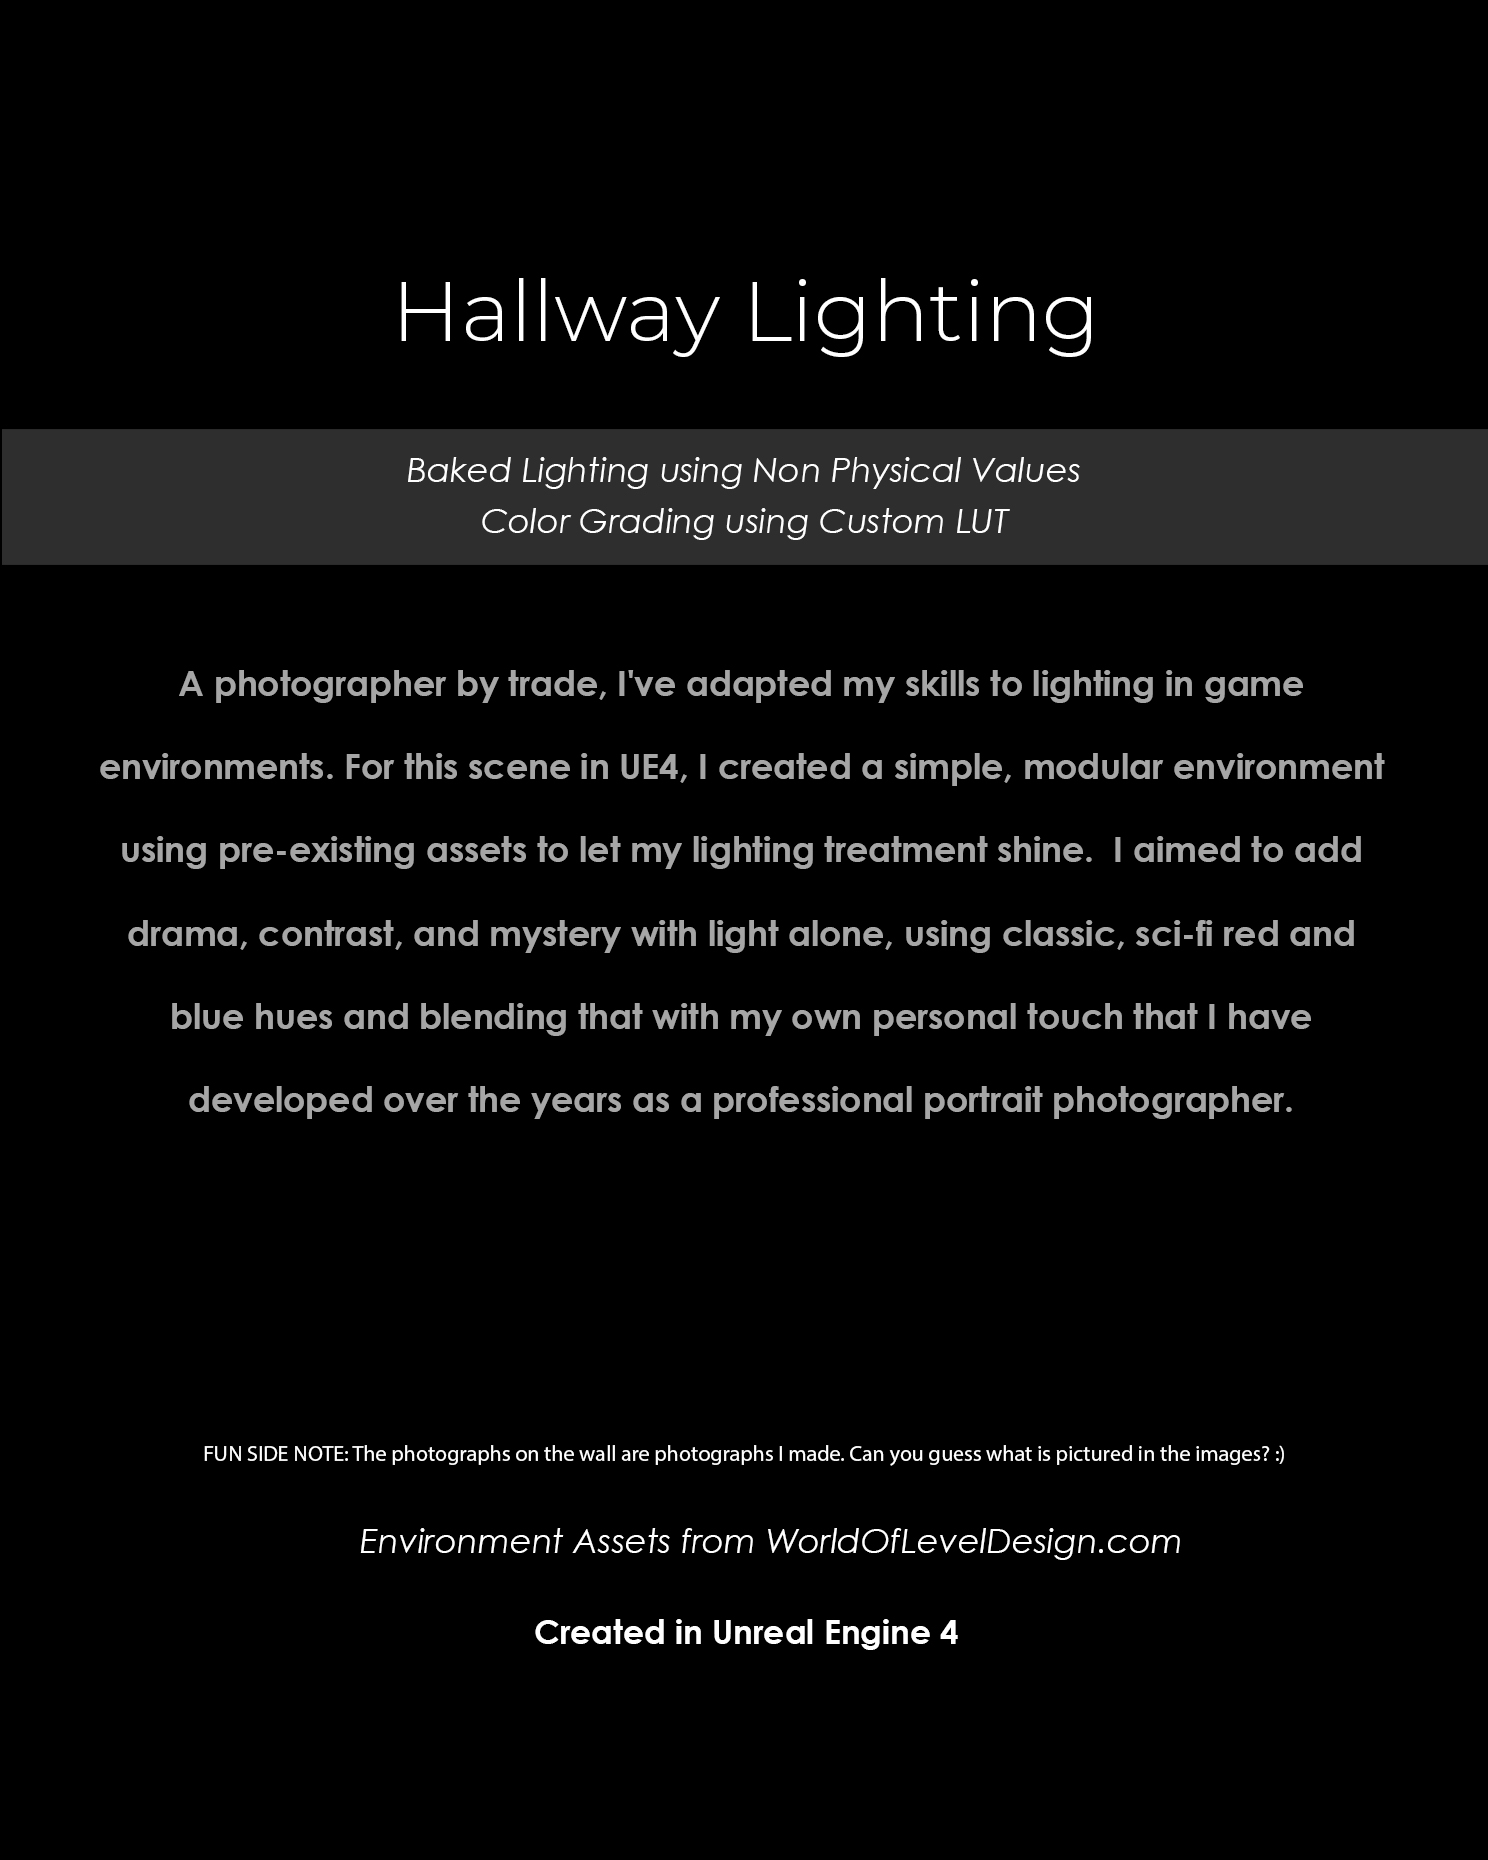 Hallway Lighting Title Page